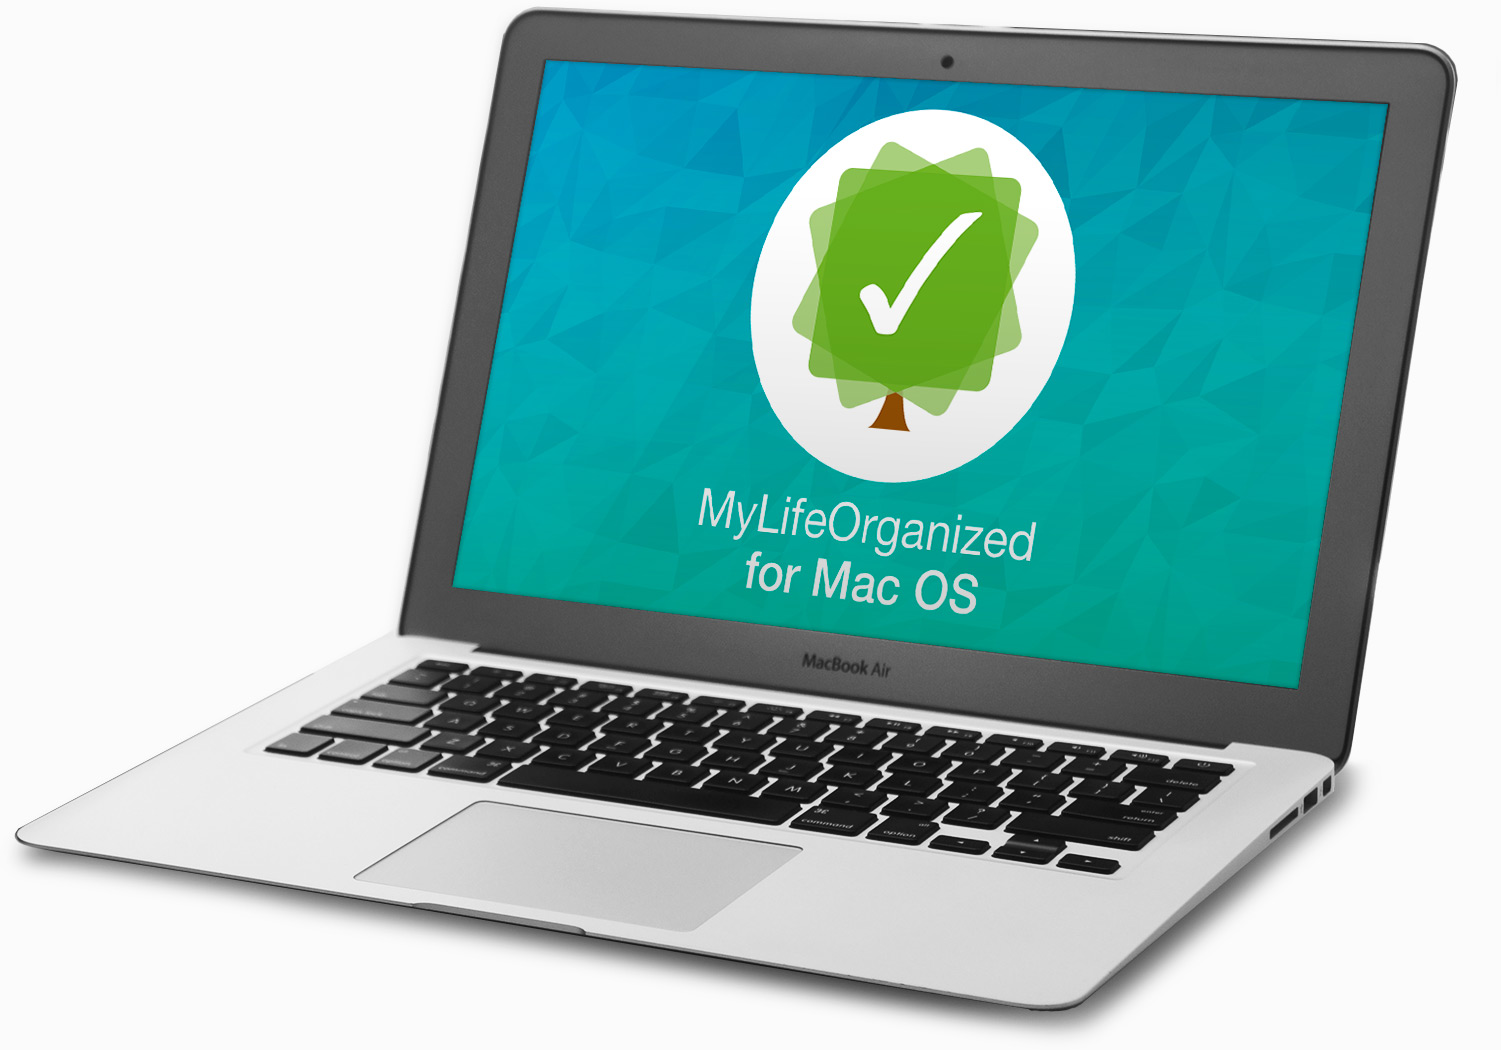 MyLifeOrganized for Mac